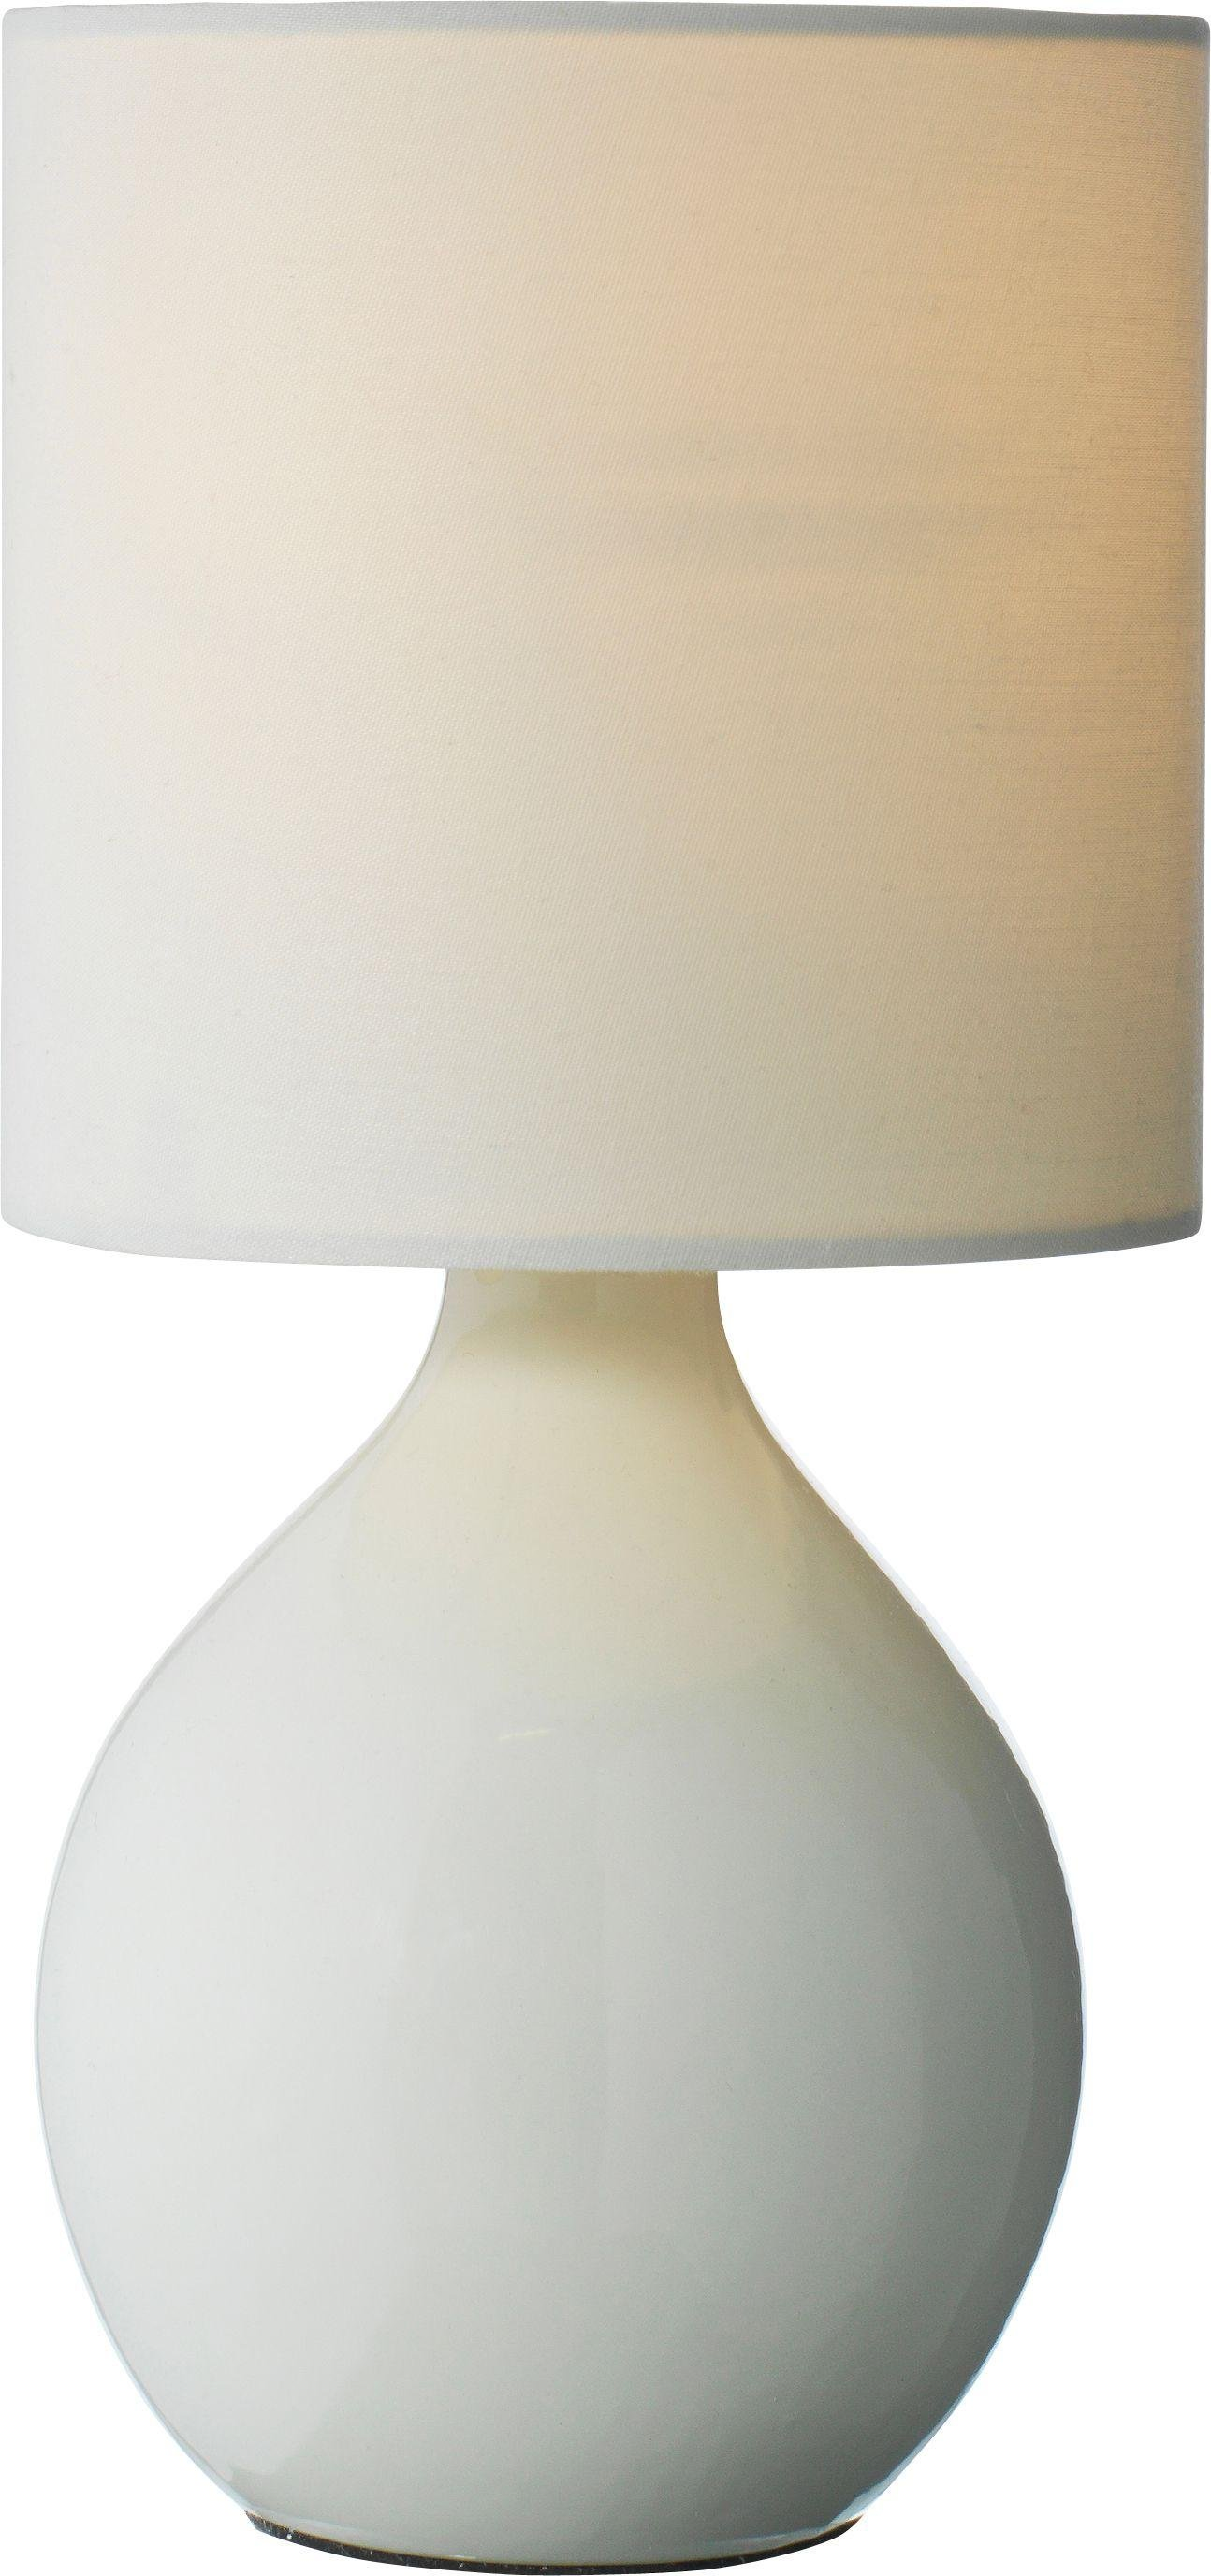 Image of ColourMatch - Round - Ceramic - Table Lamp - Cotton Cream